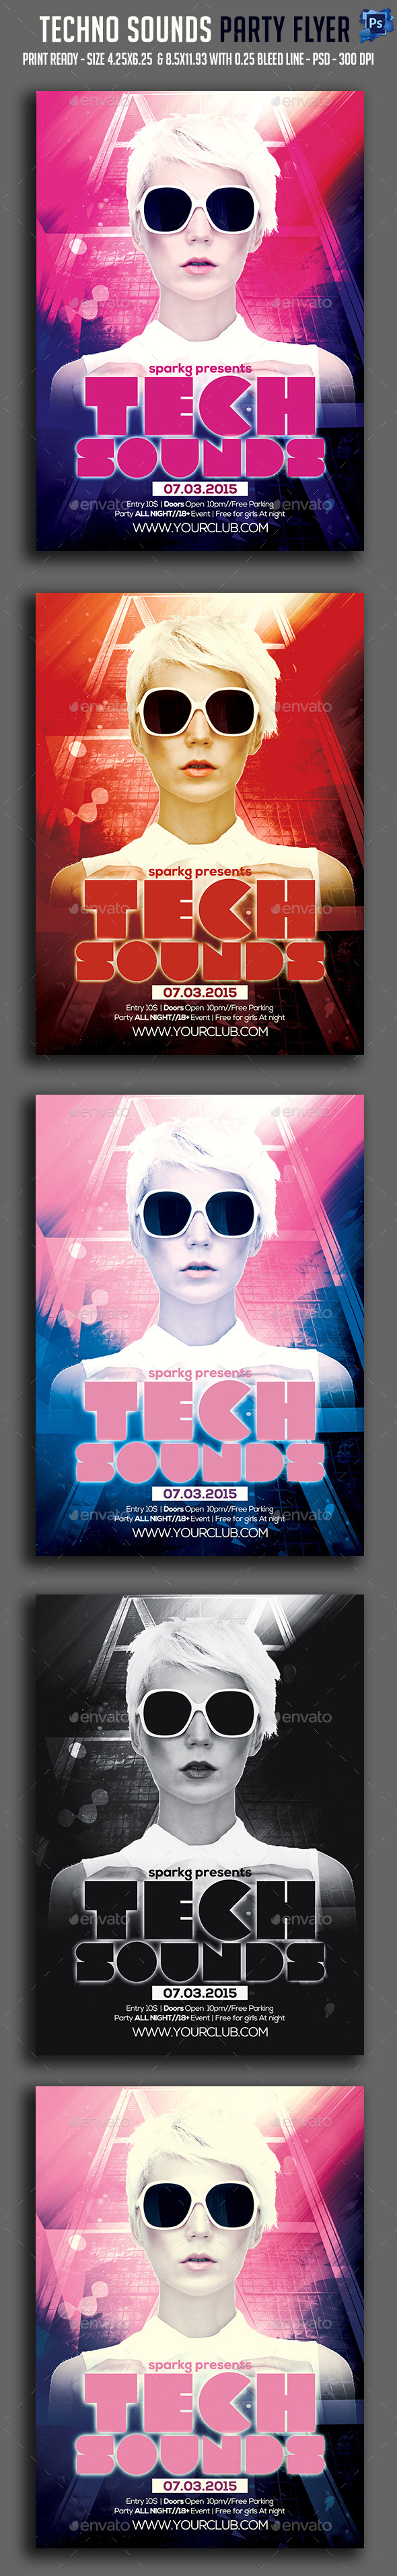 Tech Sounds Party Flyer  - Clubs & Parties Events